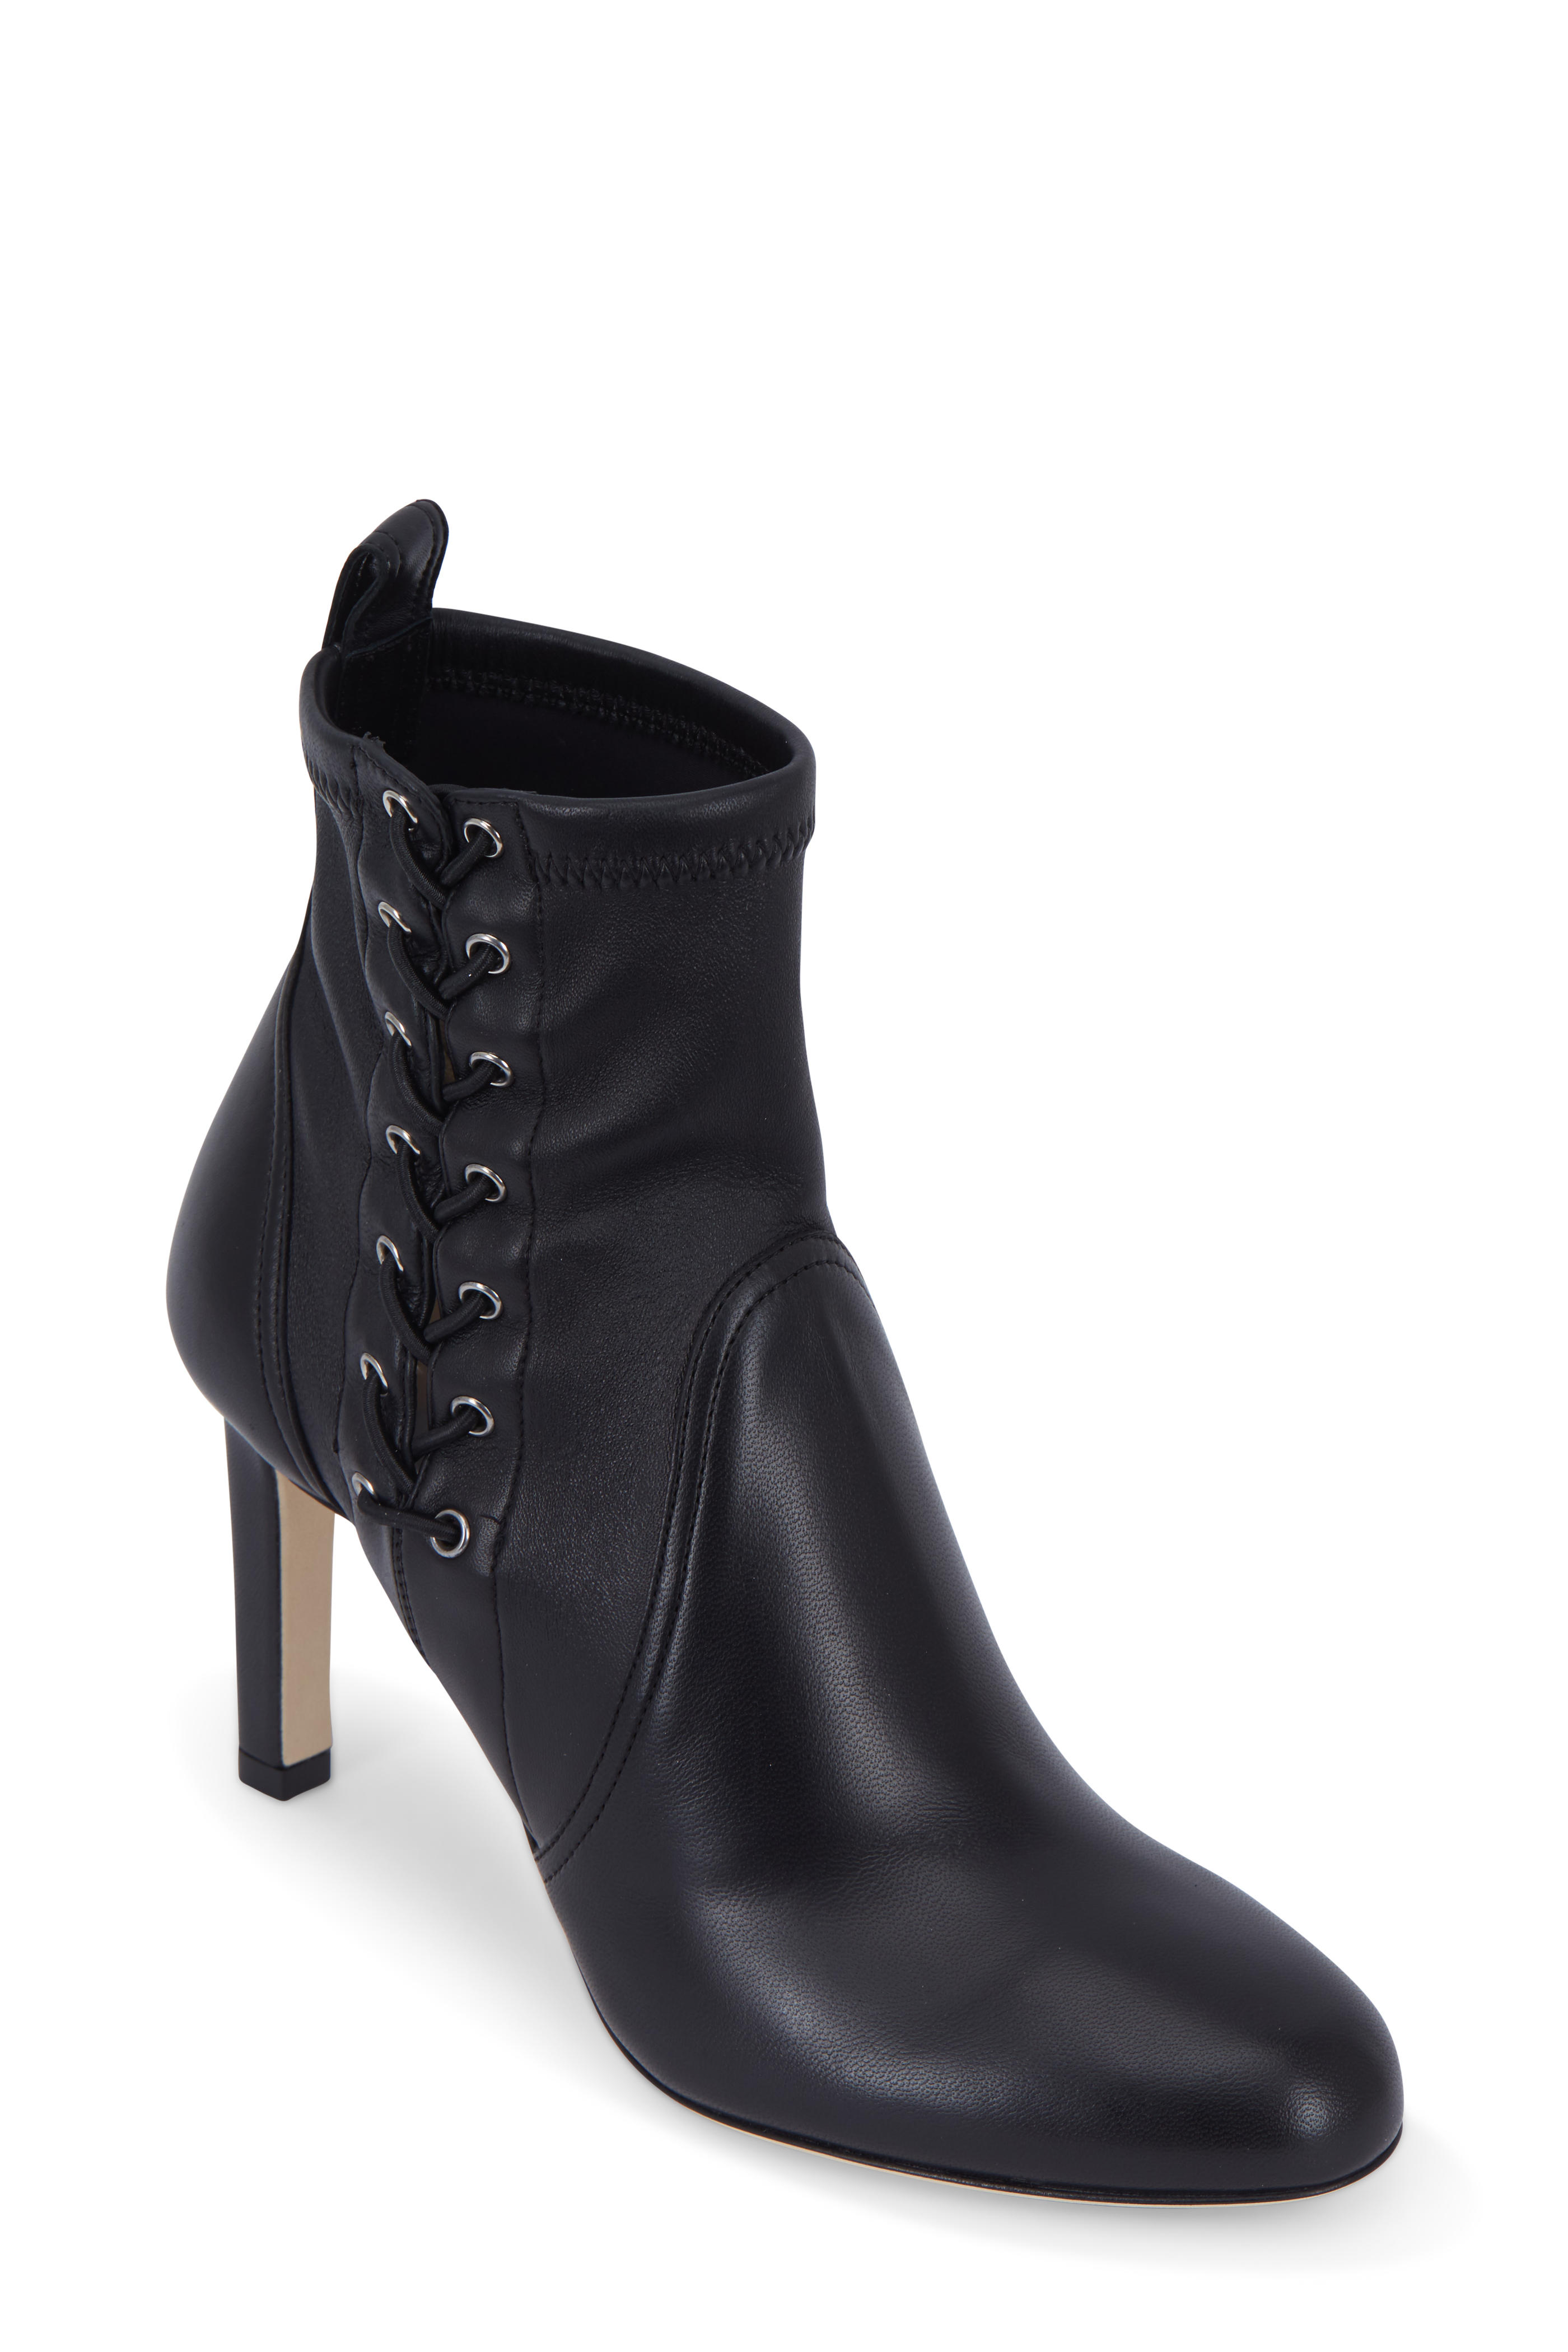 731075f1a93 Jimmy Choo - Mallory Black Stretch Leather Lace-Up Bootie, 85mm ...